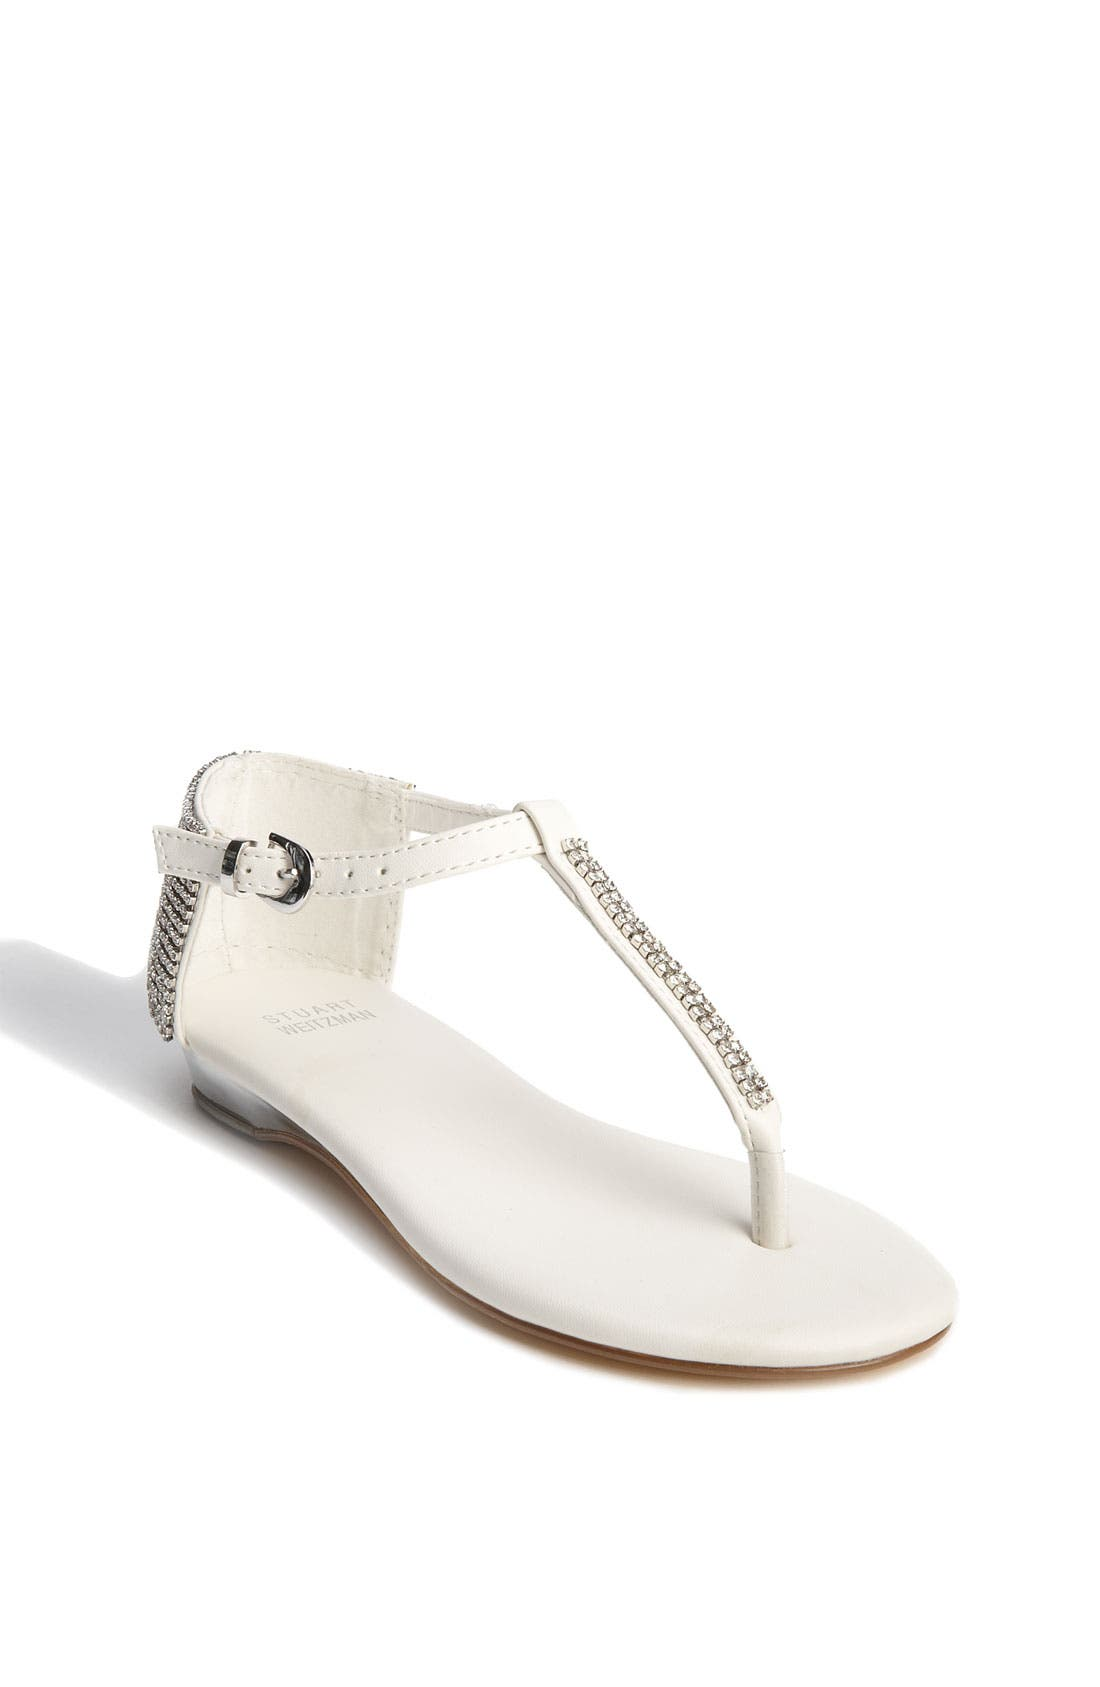 Alternate Image 1 Selected - Stuart Weitzman 'Bravo' Sandal (Toddler, Little Kid & Big Kid)